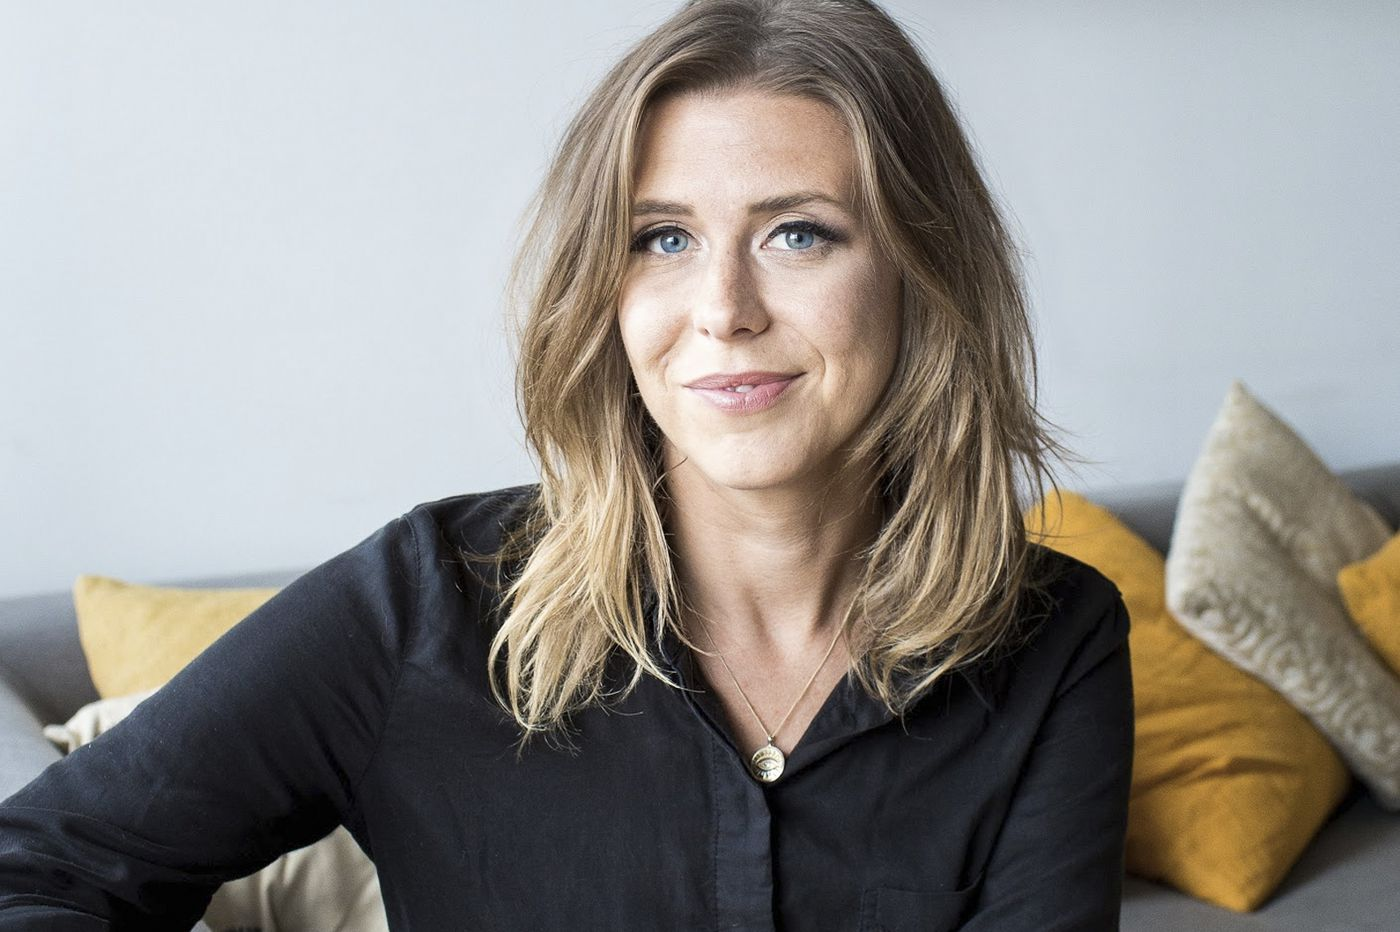 New host coming to WXPN's 'World Cafe'